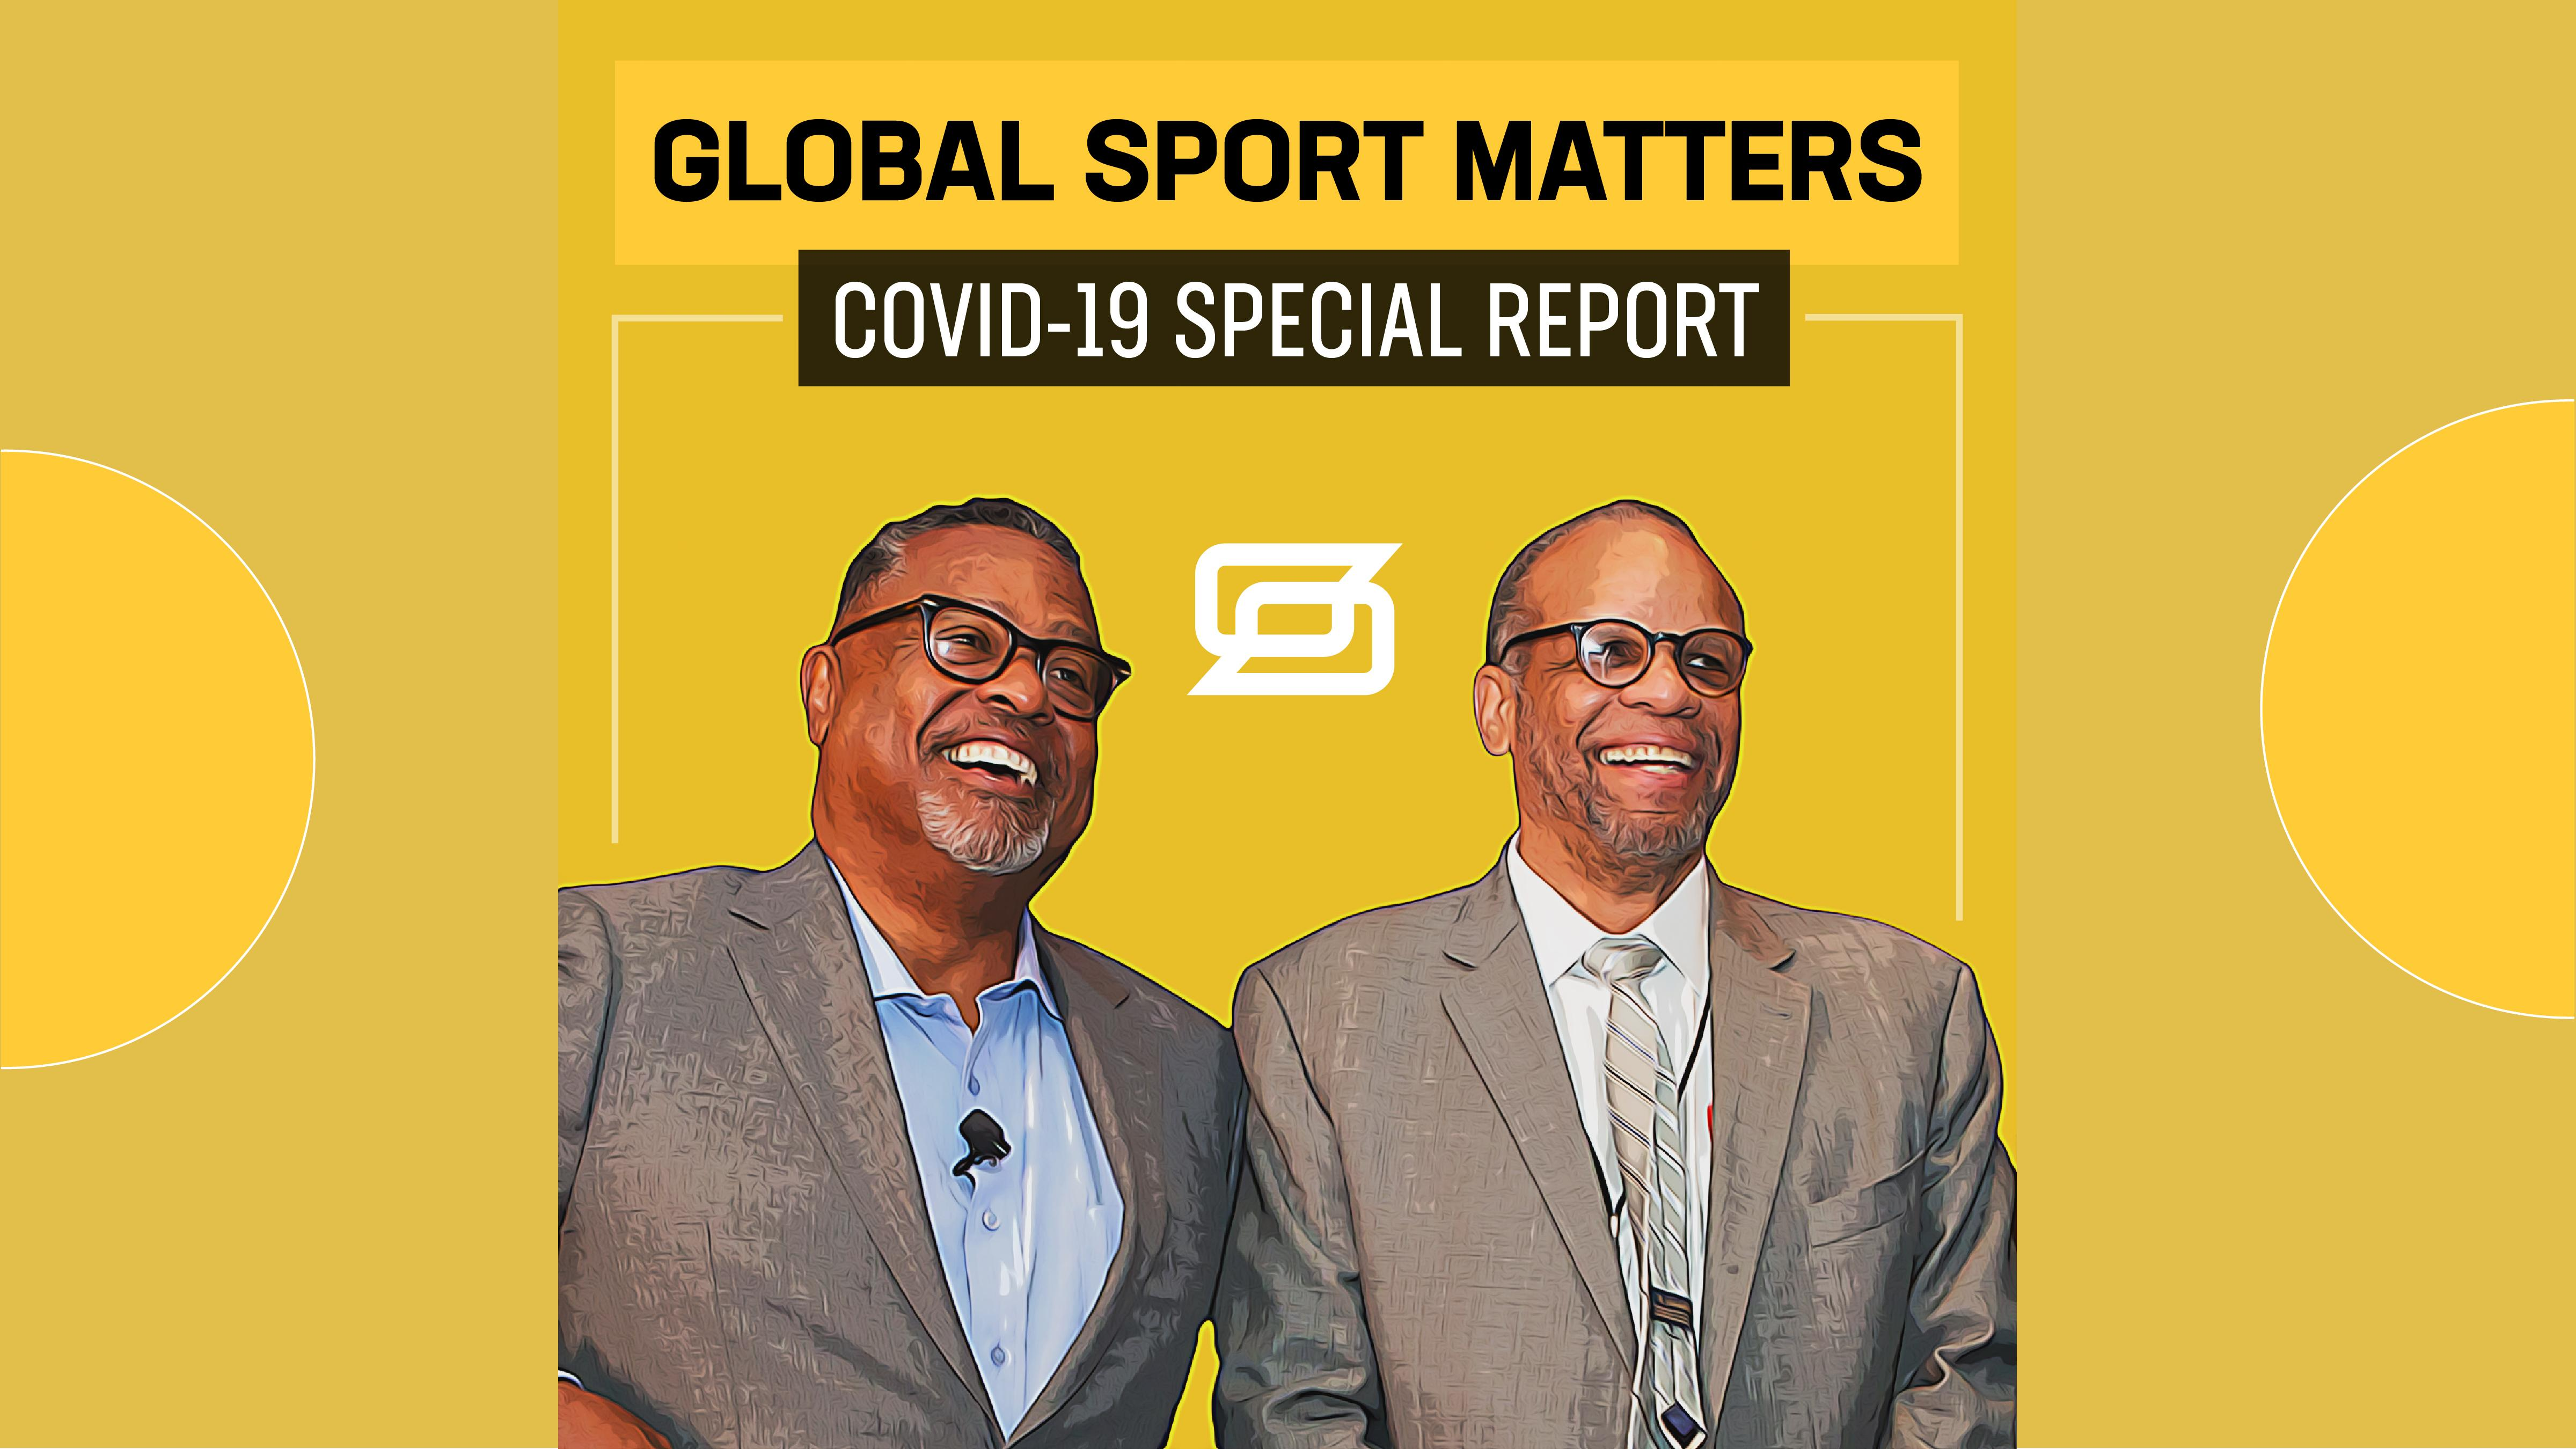 Global Sport Matters: COVID-19 Special Report